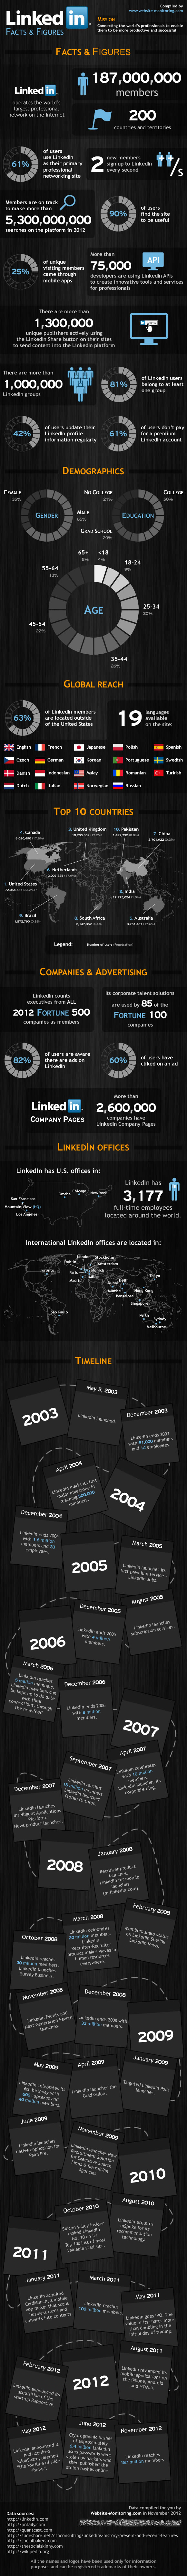 linkedin-facts-figures